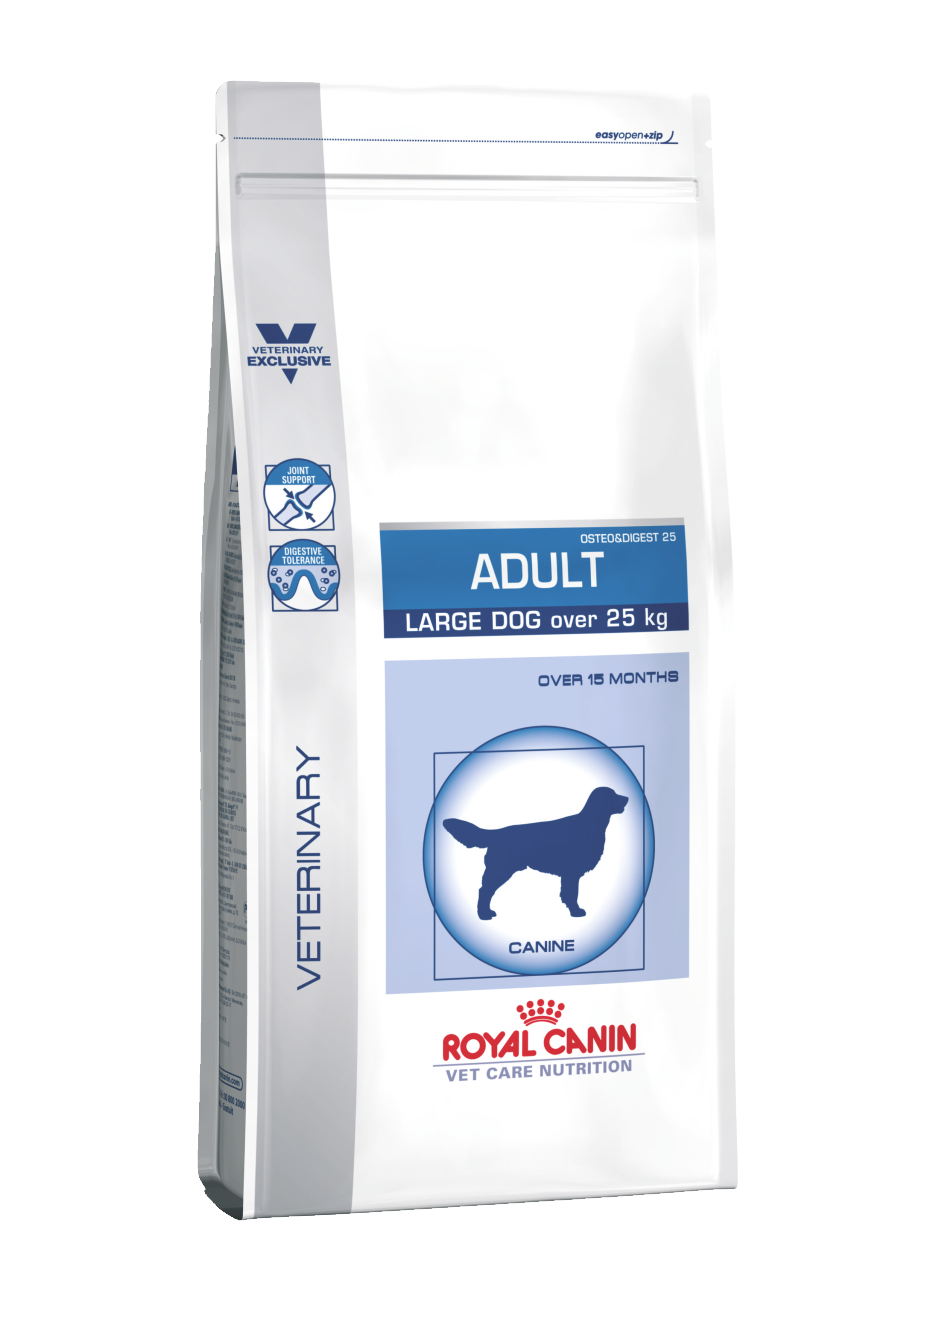 Adult Large Dogs